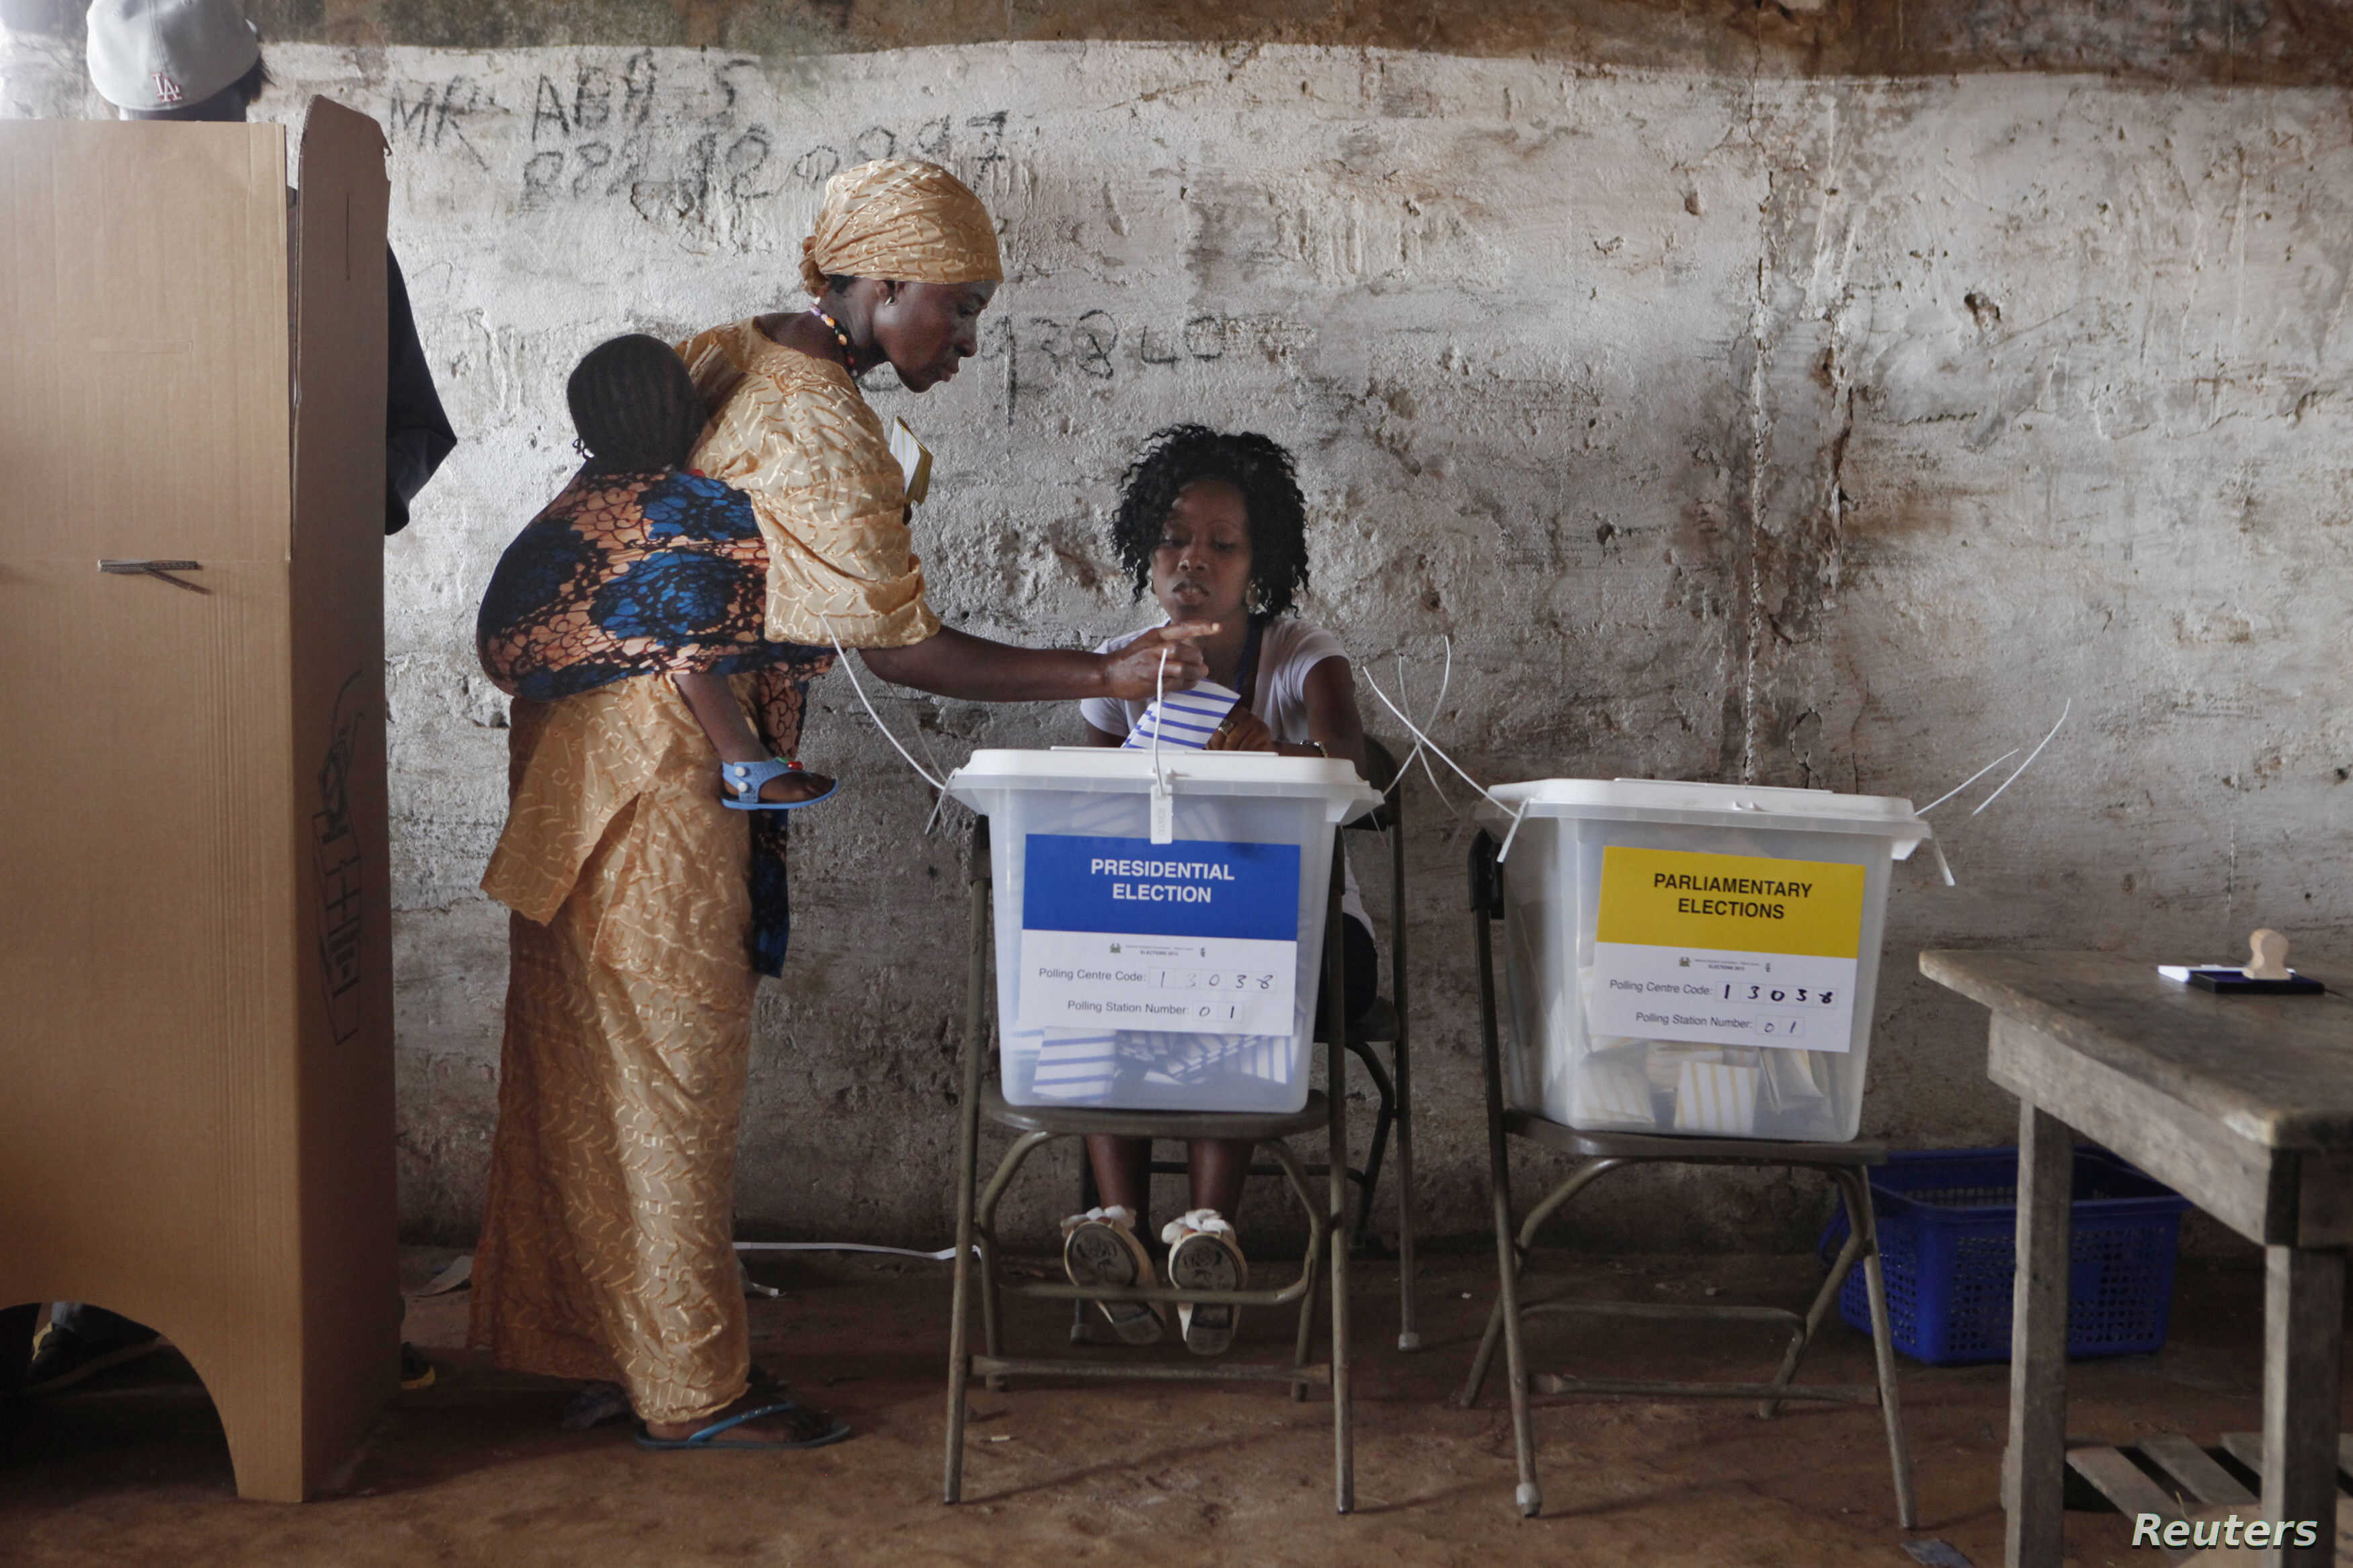 A woman carrying a baby on her back votes in Freetown November 17, 2012.